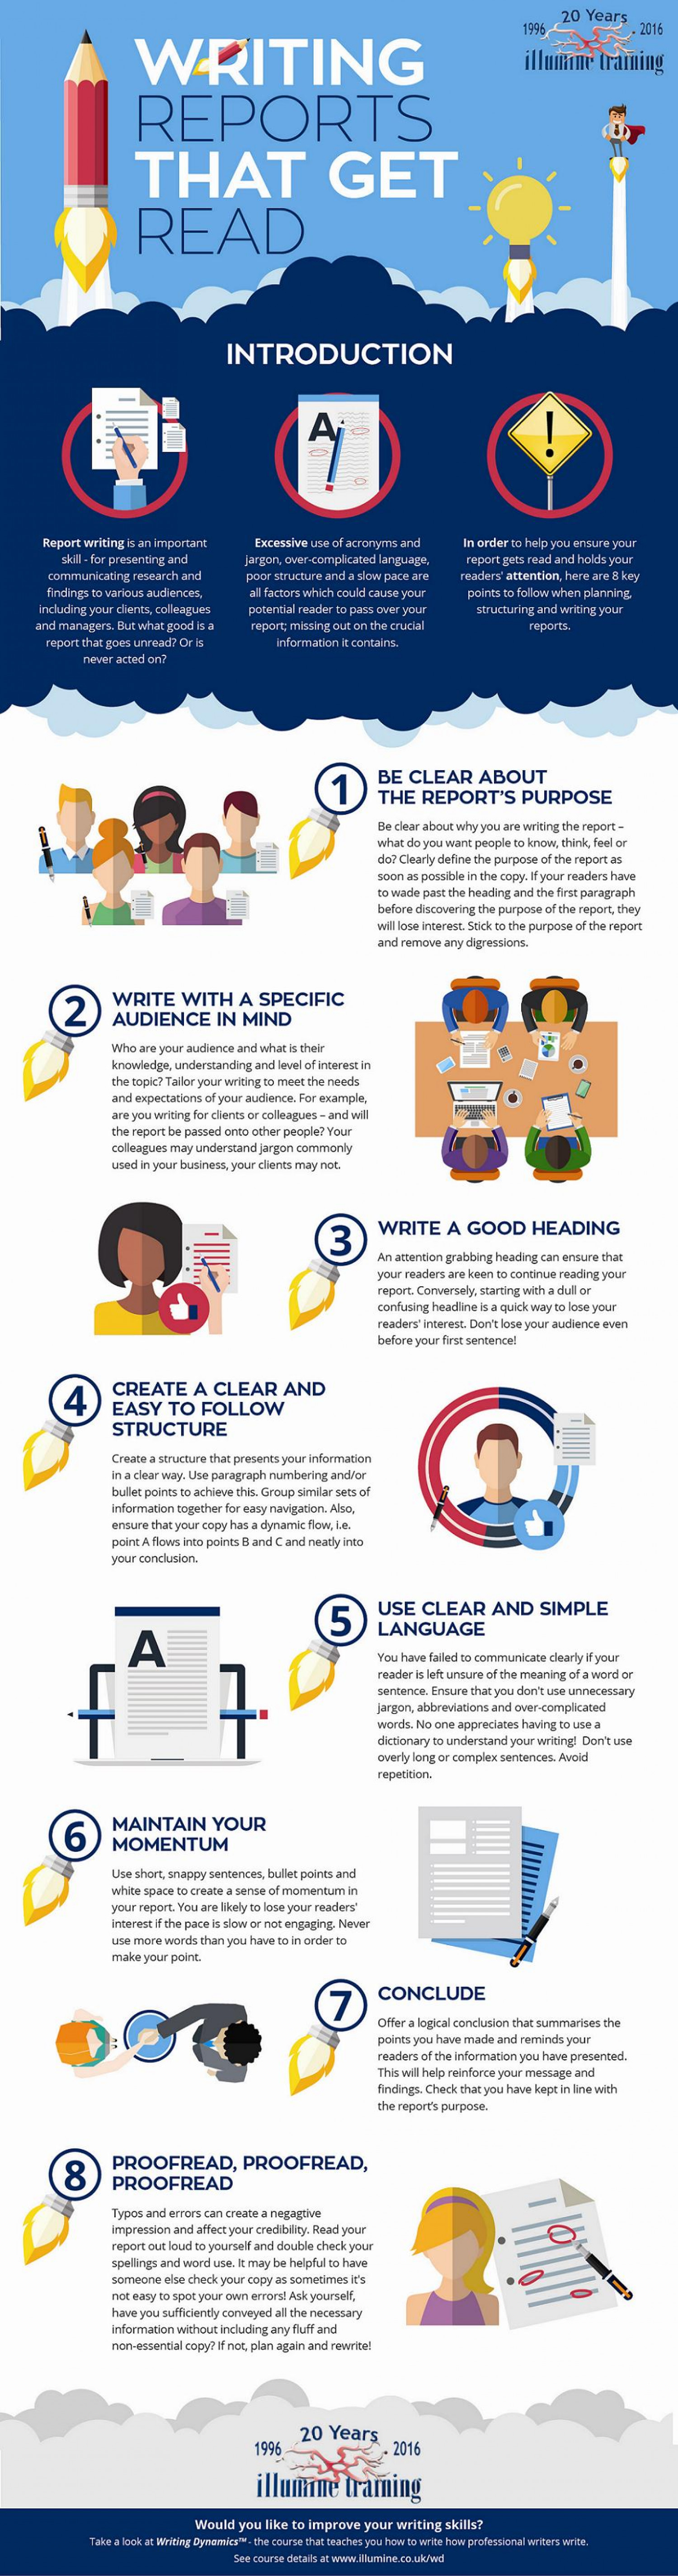 Writing reports that get read Infographic